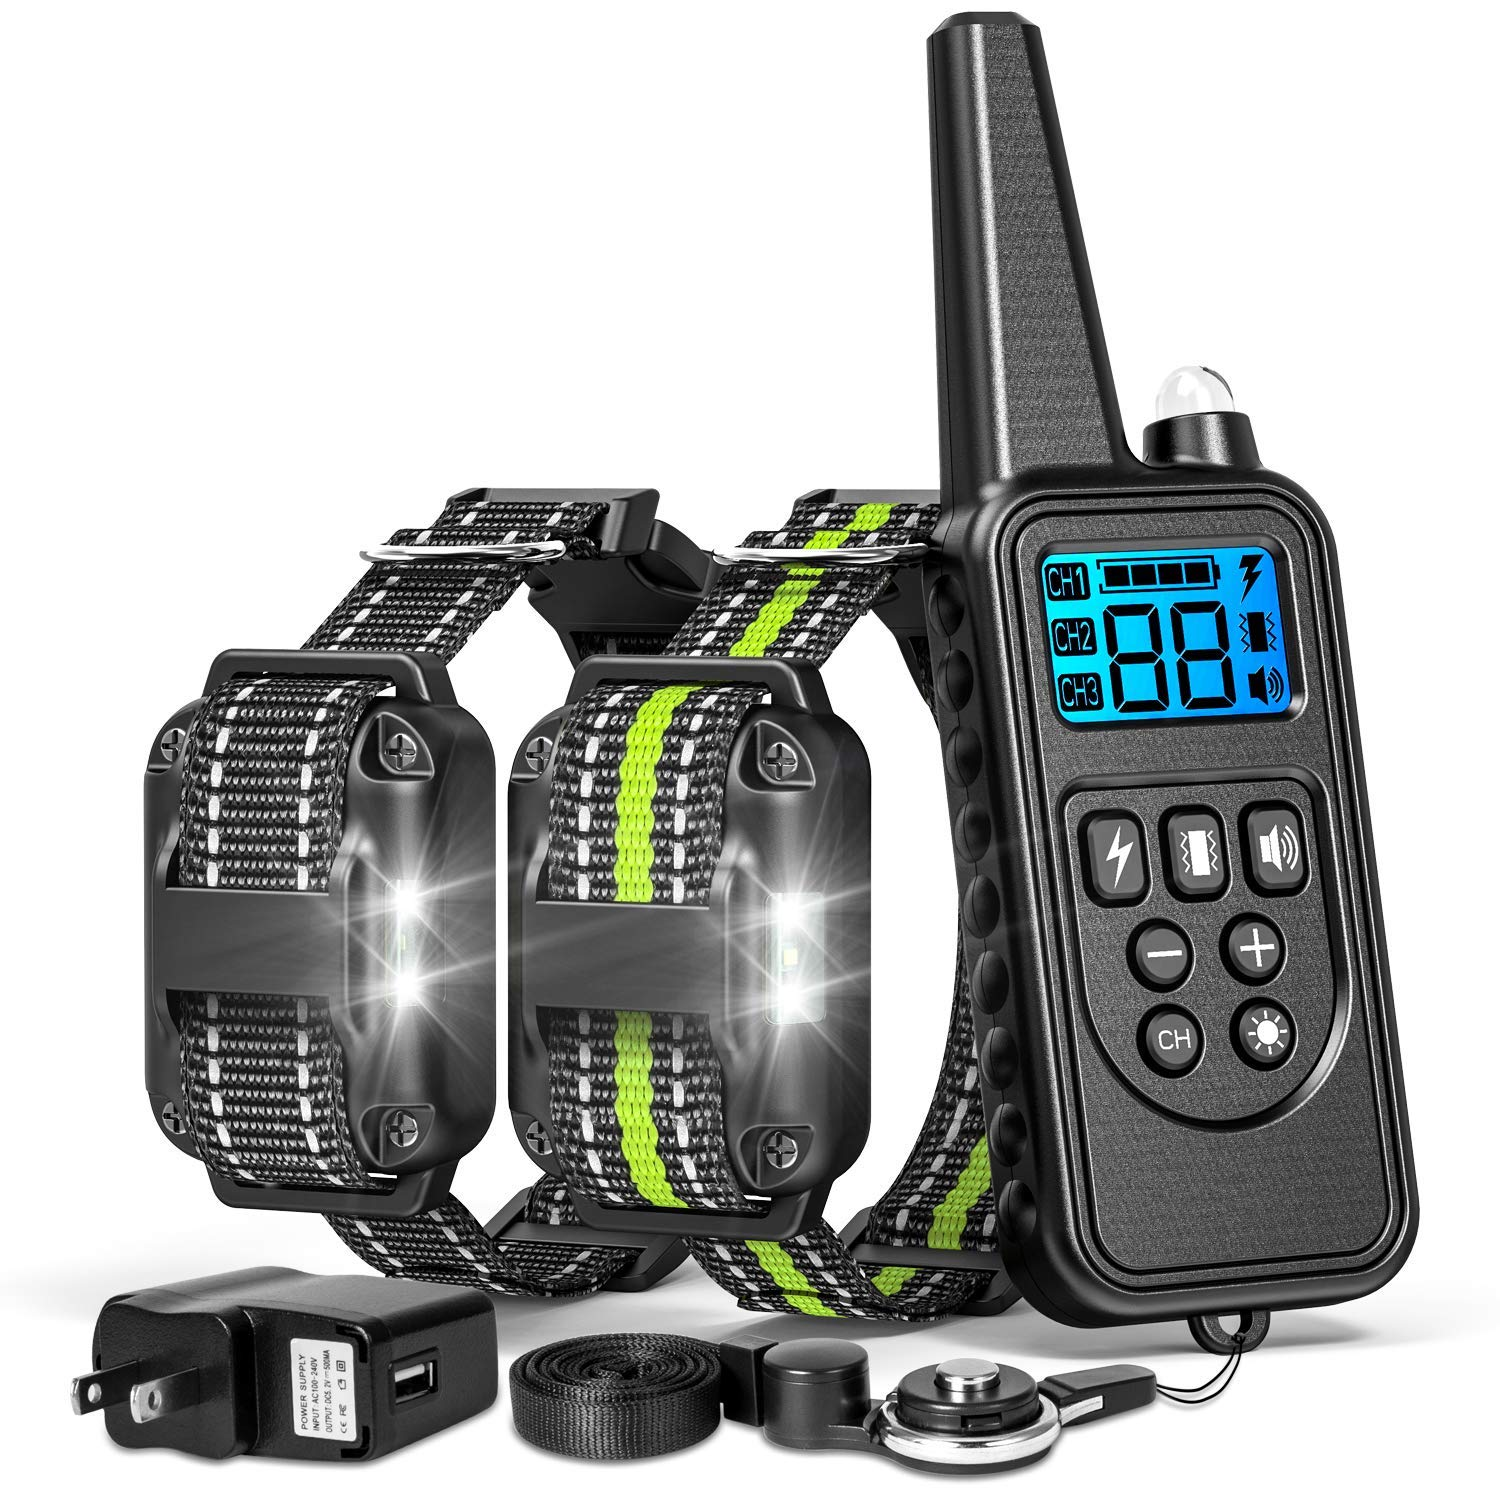 2600ft Remote Range, For 2 Dogs FunniPets Dog Training Collar, 2 Dog Shock Collar with Remote 2600ft Range Waterproof Electronic Dog Collar for Medium and Large Breed Dogs with 4 Training Modes Light Shock Vibration Beep